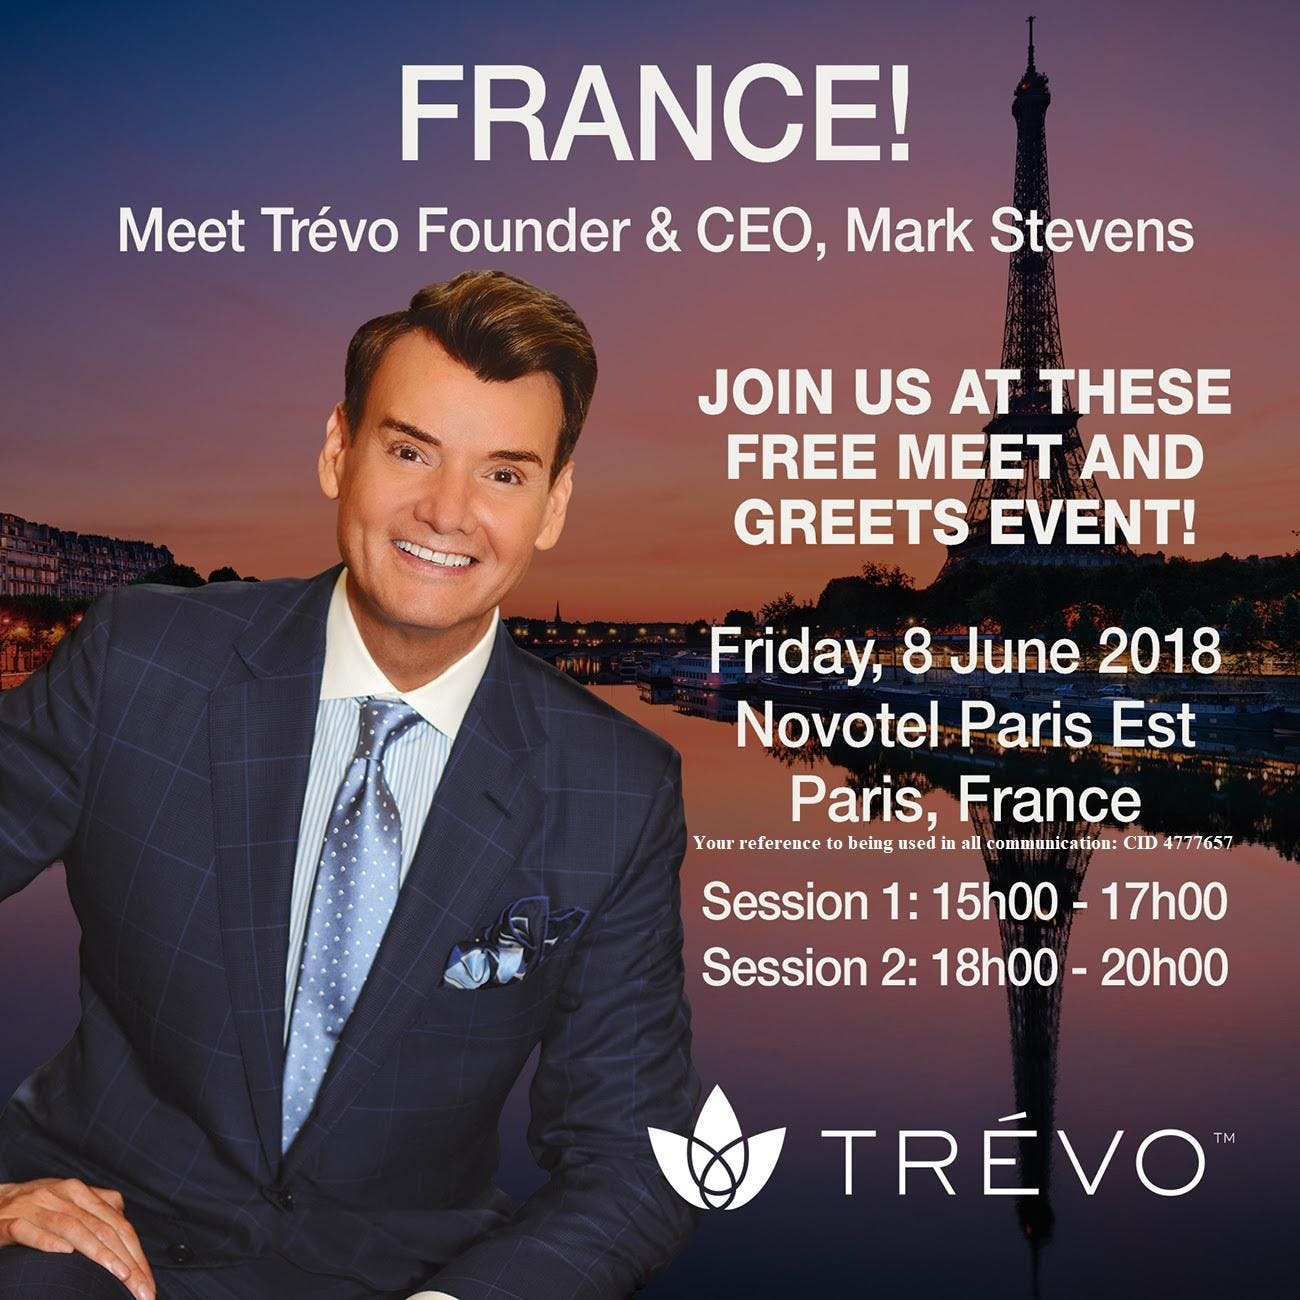 Trvo Founder And Ceo Meet And Greet And Training At Hotel Novotel